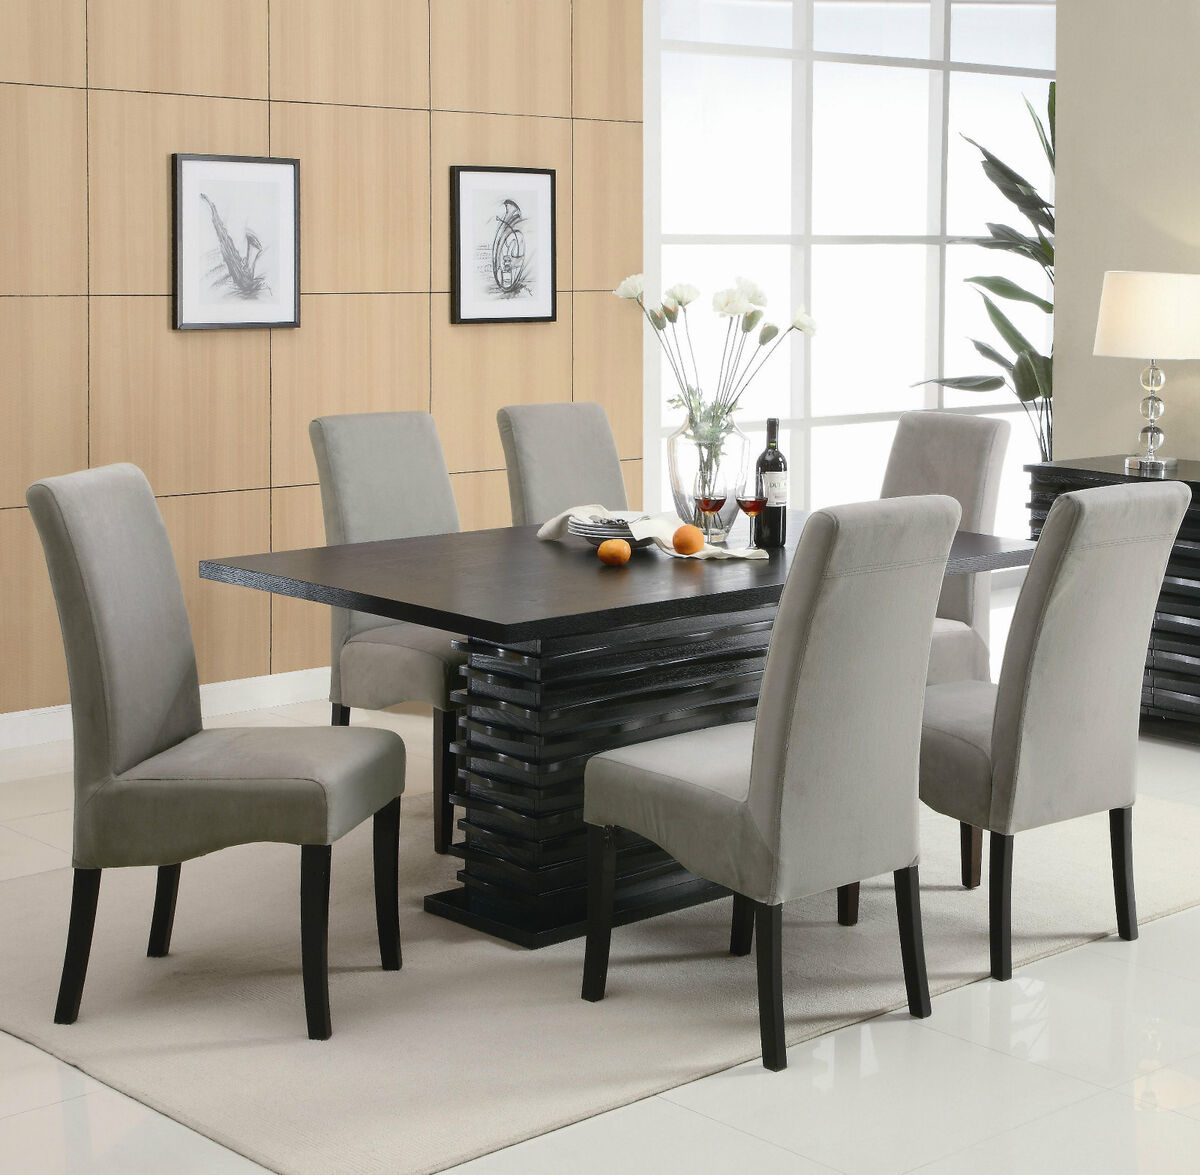 Perfect Contemporary Dining Table Sets 1200 x 1175 · 161 kB · jpeg